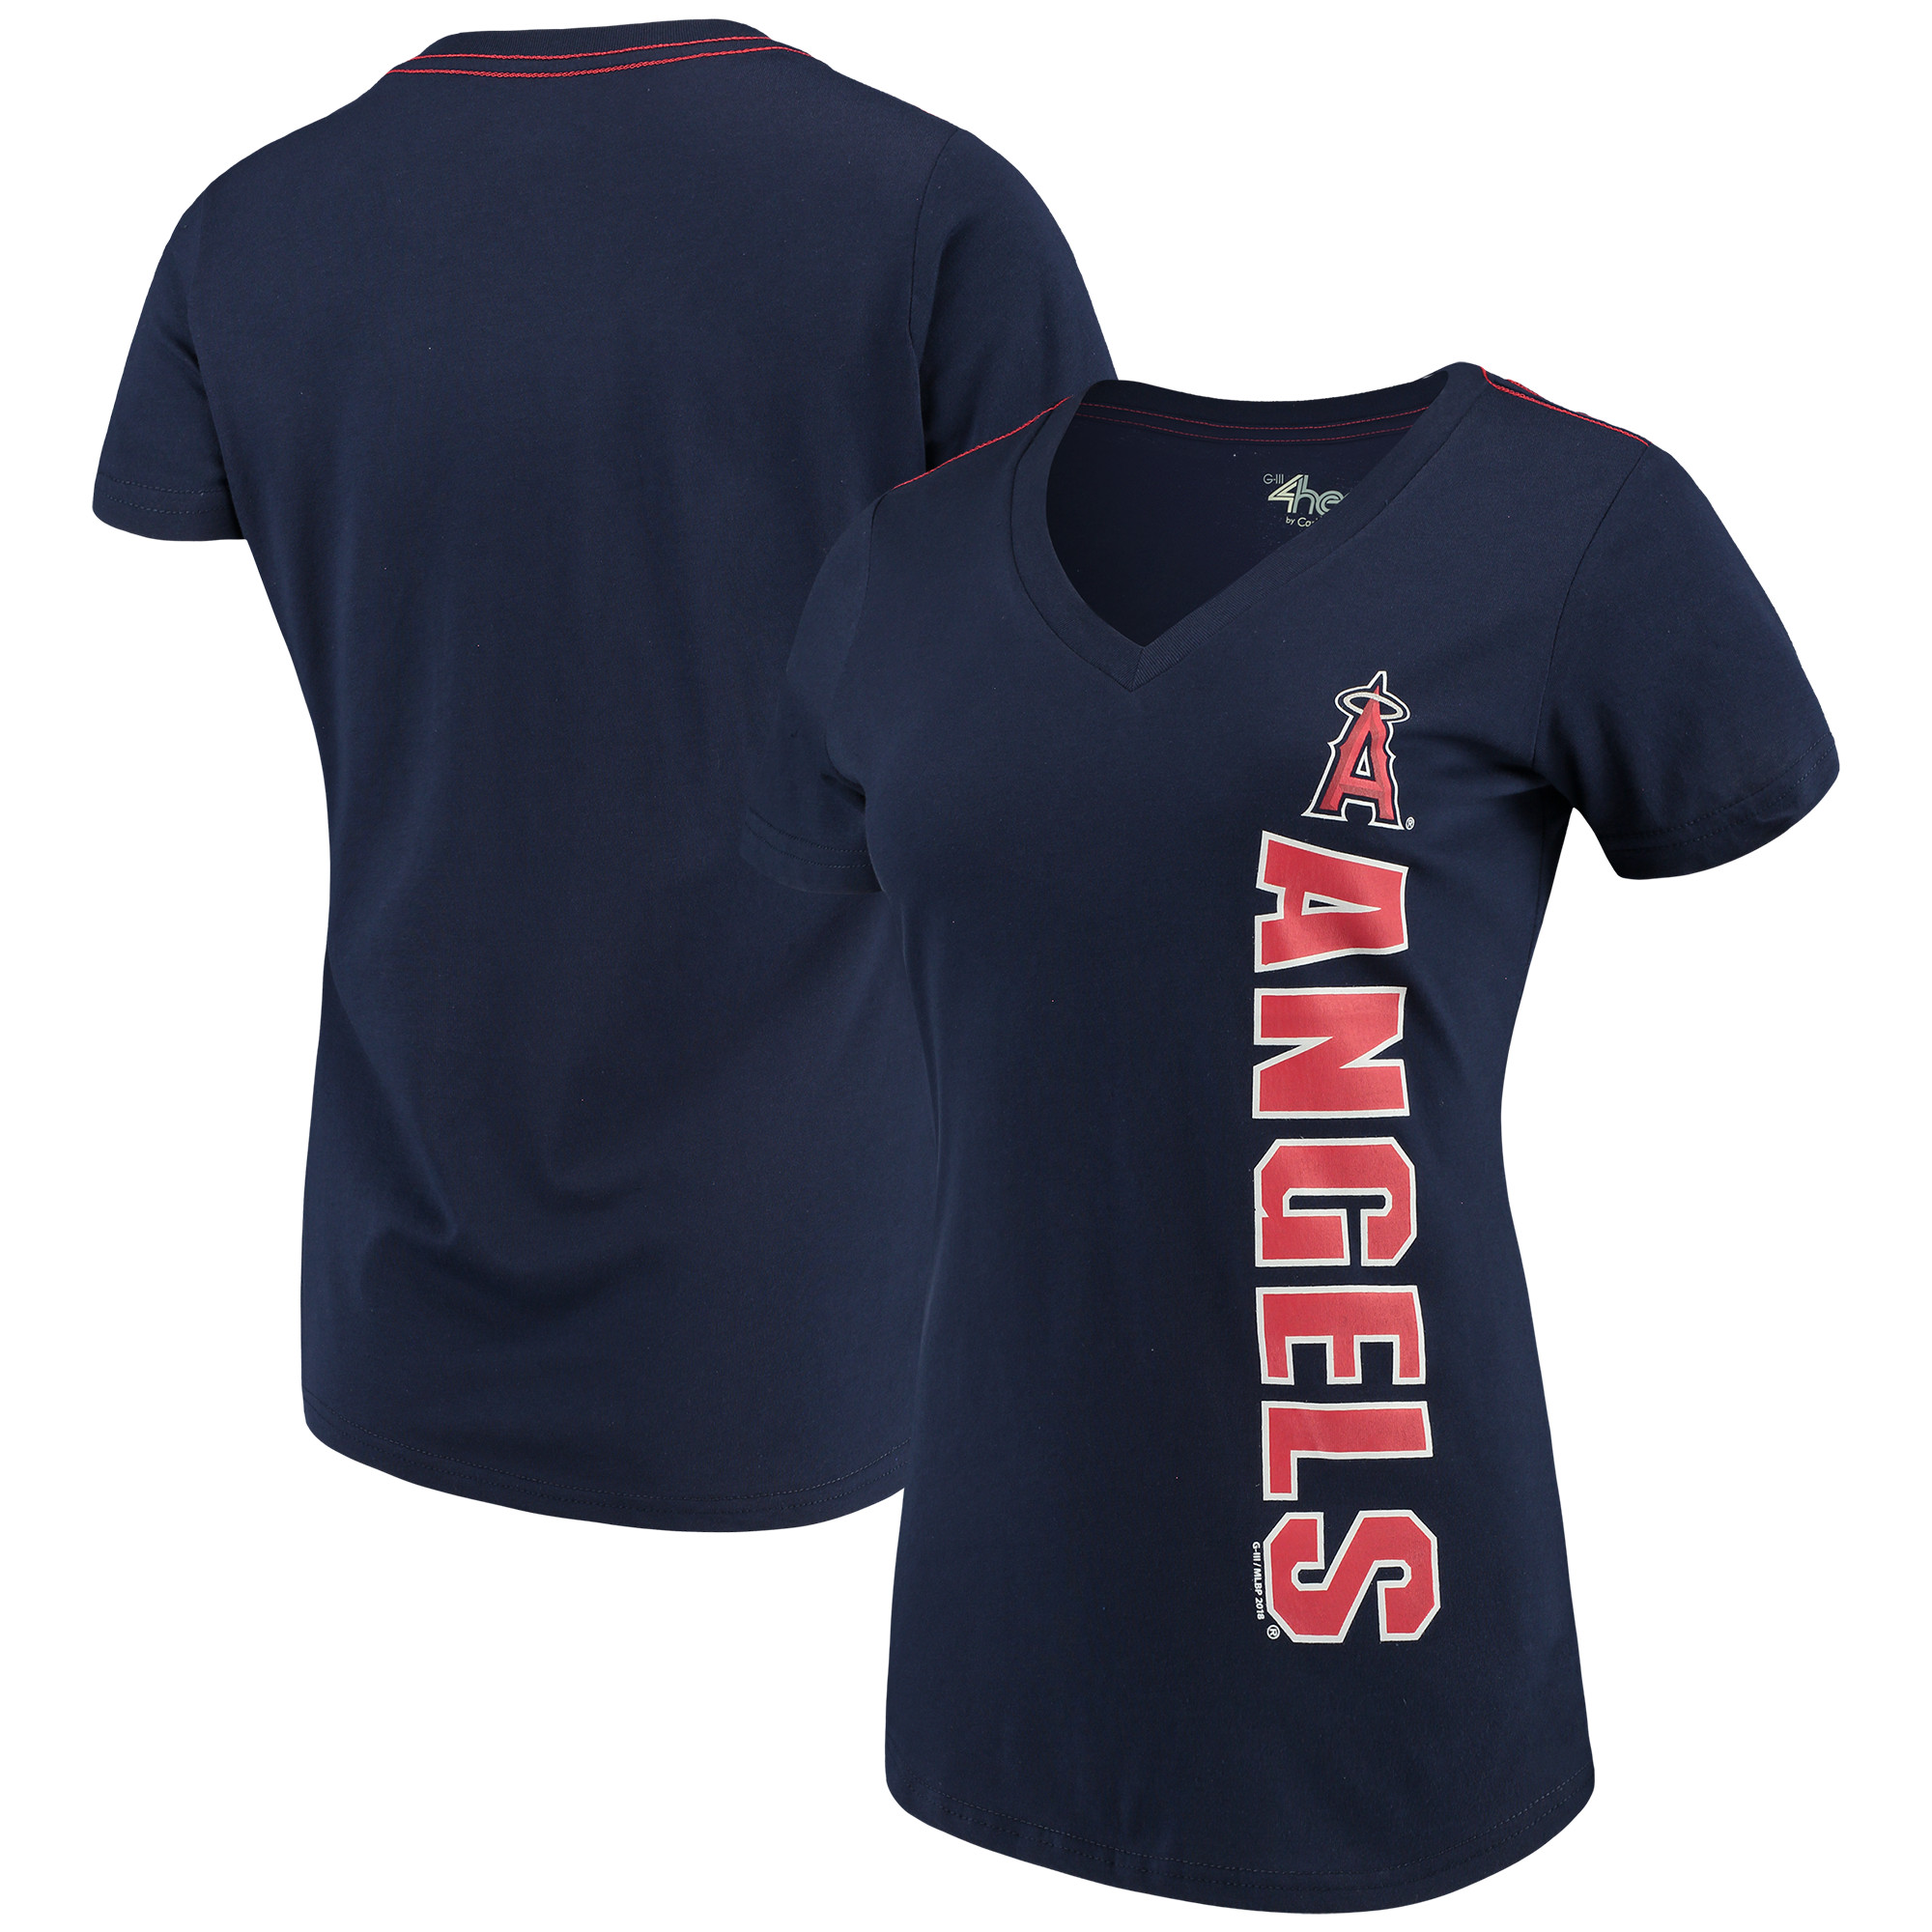 Los Angeles Angels G-III 4Her by Carl Banks Women's Asterisk V-Neck T-Shirt - Navy